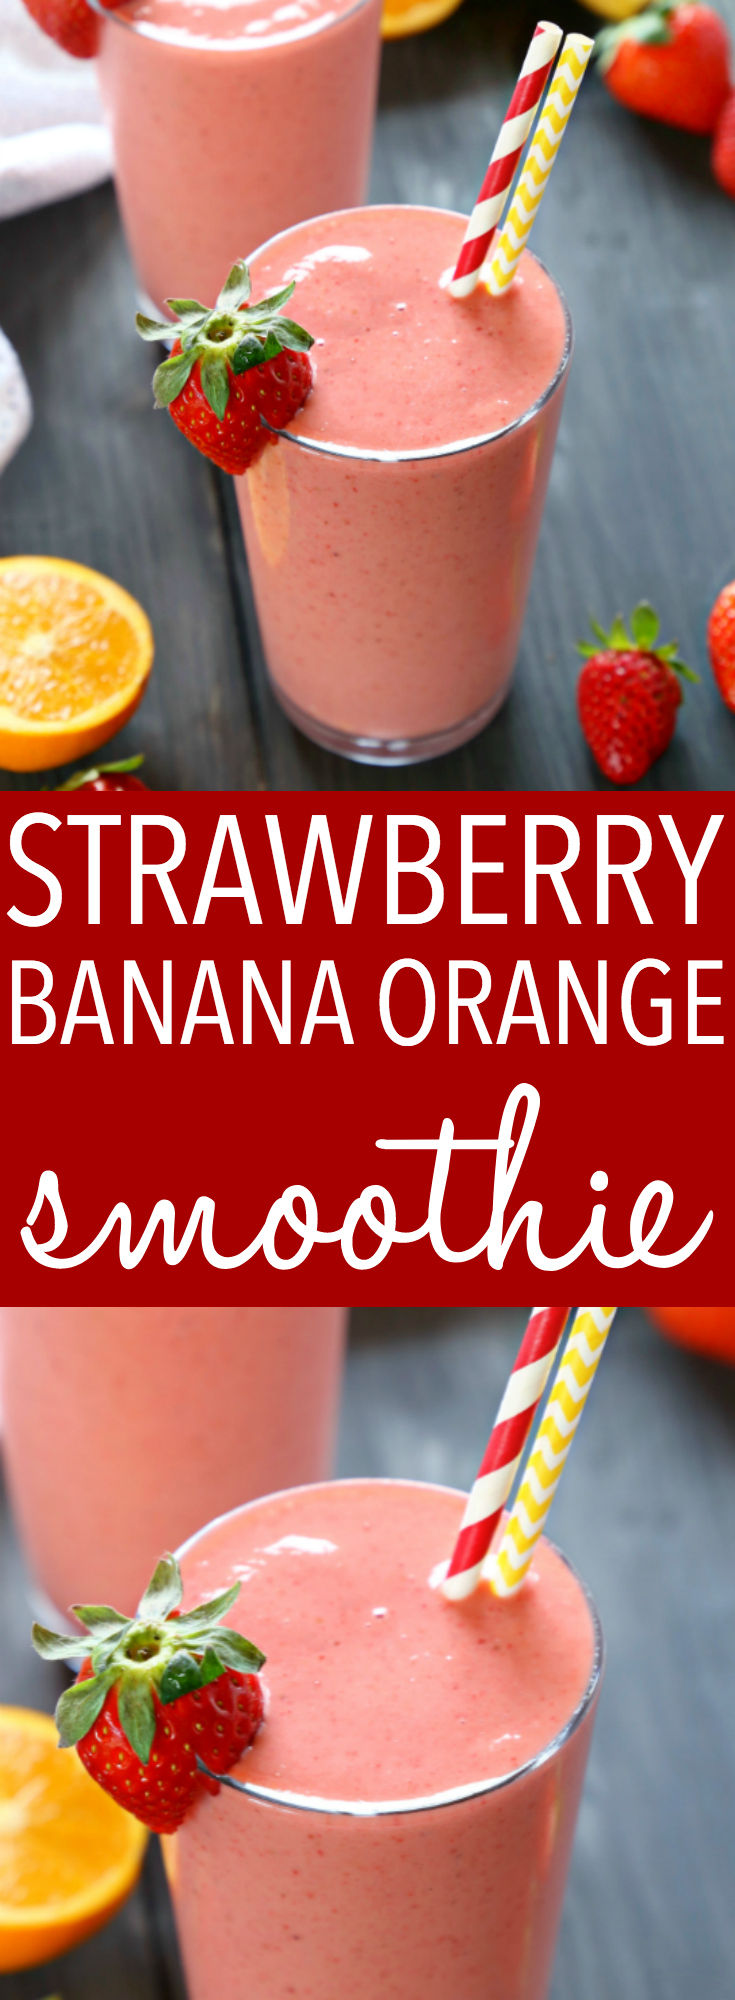 This Strawberry Banana Orange Power Smoothie is the perfect fruit smoothie packed with berries, bananas, and juicy oranges! It makes a great breakfast or post-workout drink, and it's the perfect mid-afternoon pick-me-up snack! Recipe from thebusybaker.ca! #workoutsmoothie #easysmoothie #healthysmoothie #strawberrysmoothie via @busybakerblog